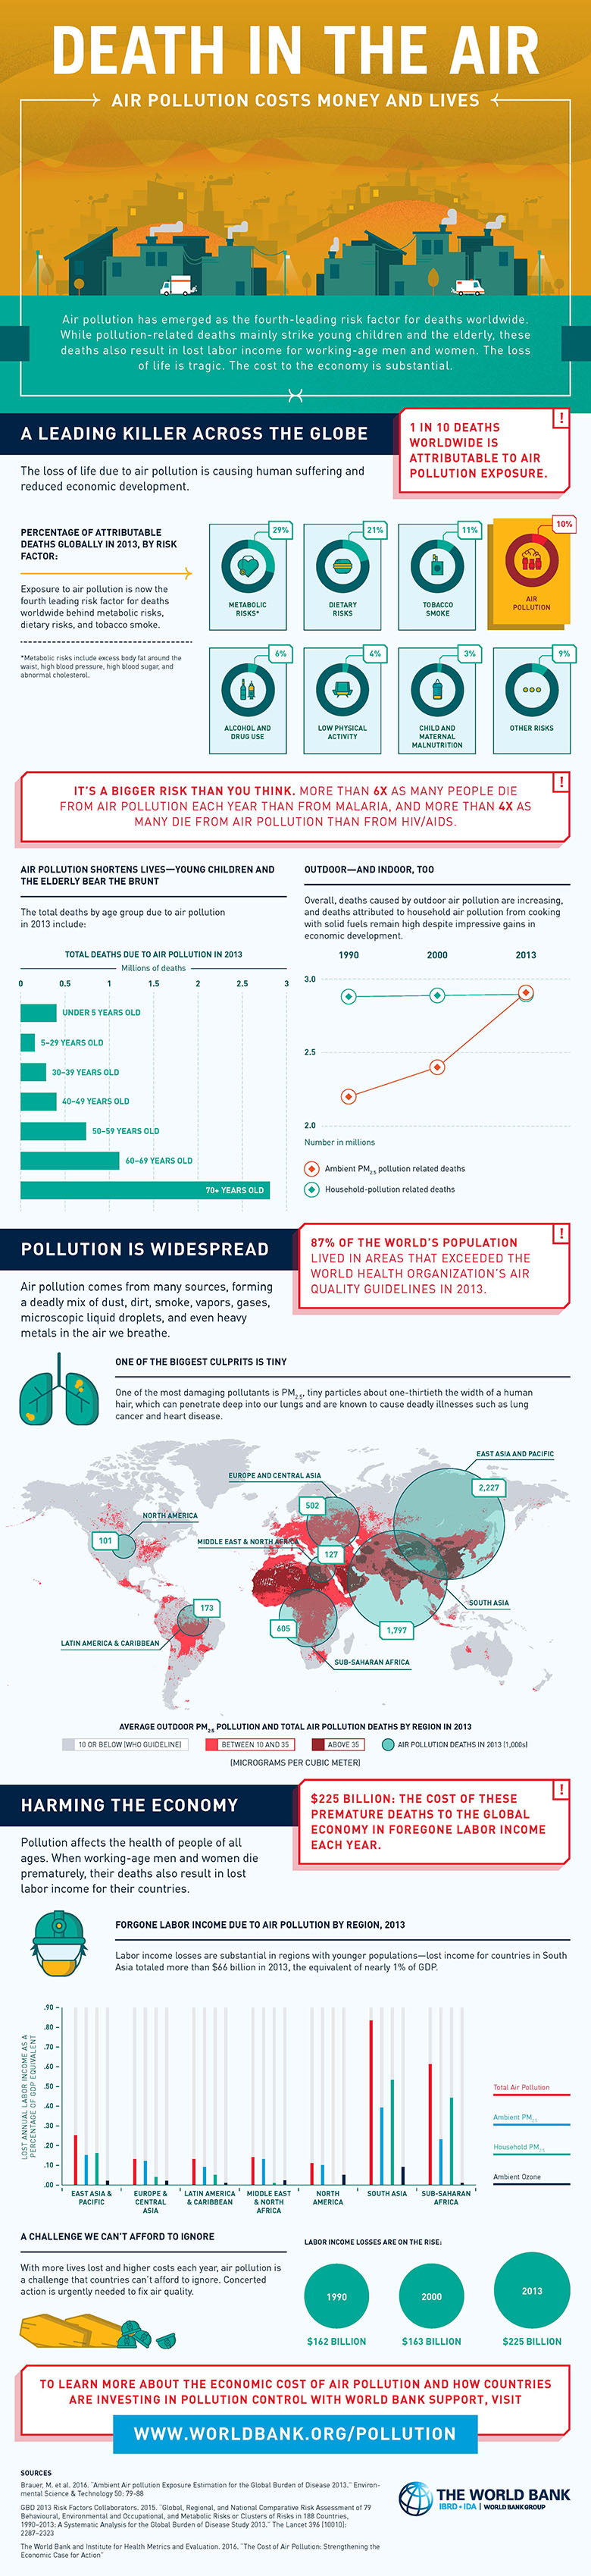 Death in the Air: Air Pollution Costs Money and Lives (Image: World Bank)